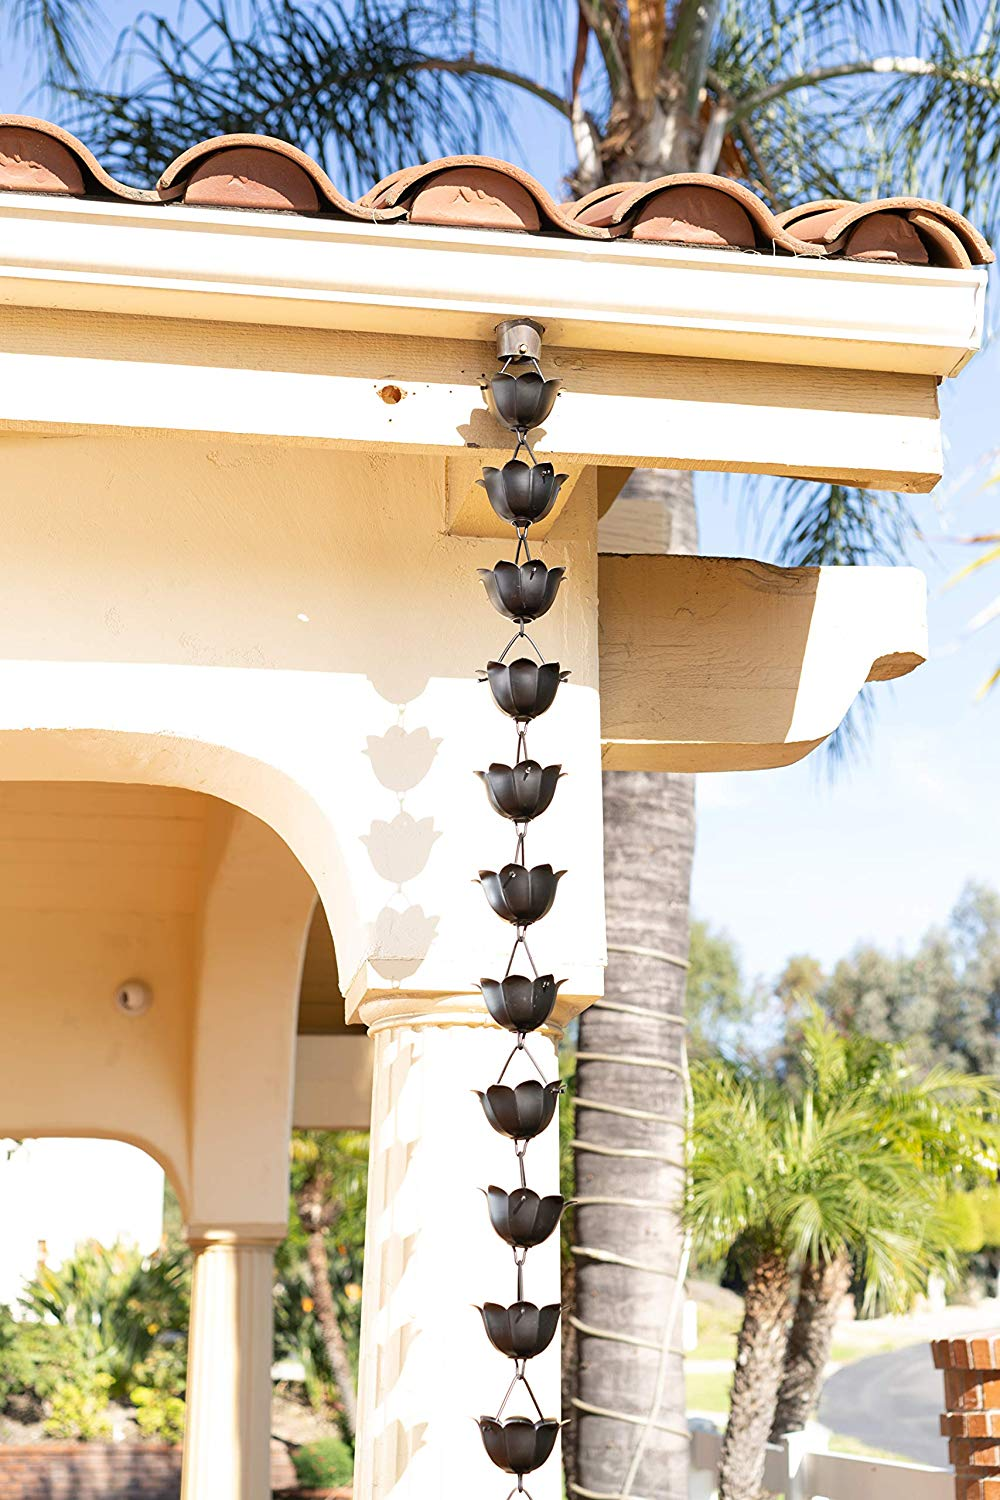 Dark brown matte rain chain with lotus-shaped cups hanging from a Southwestern-style home